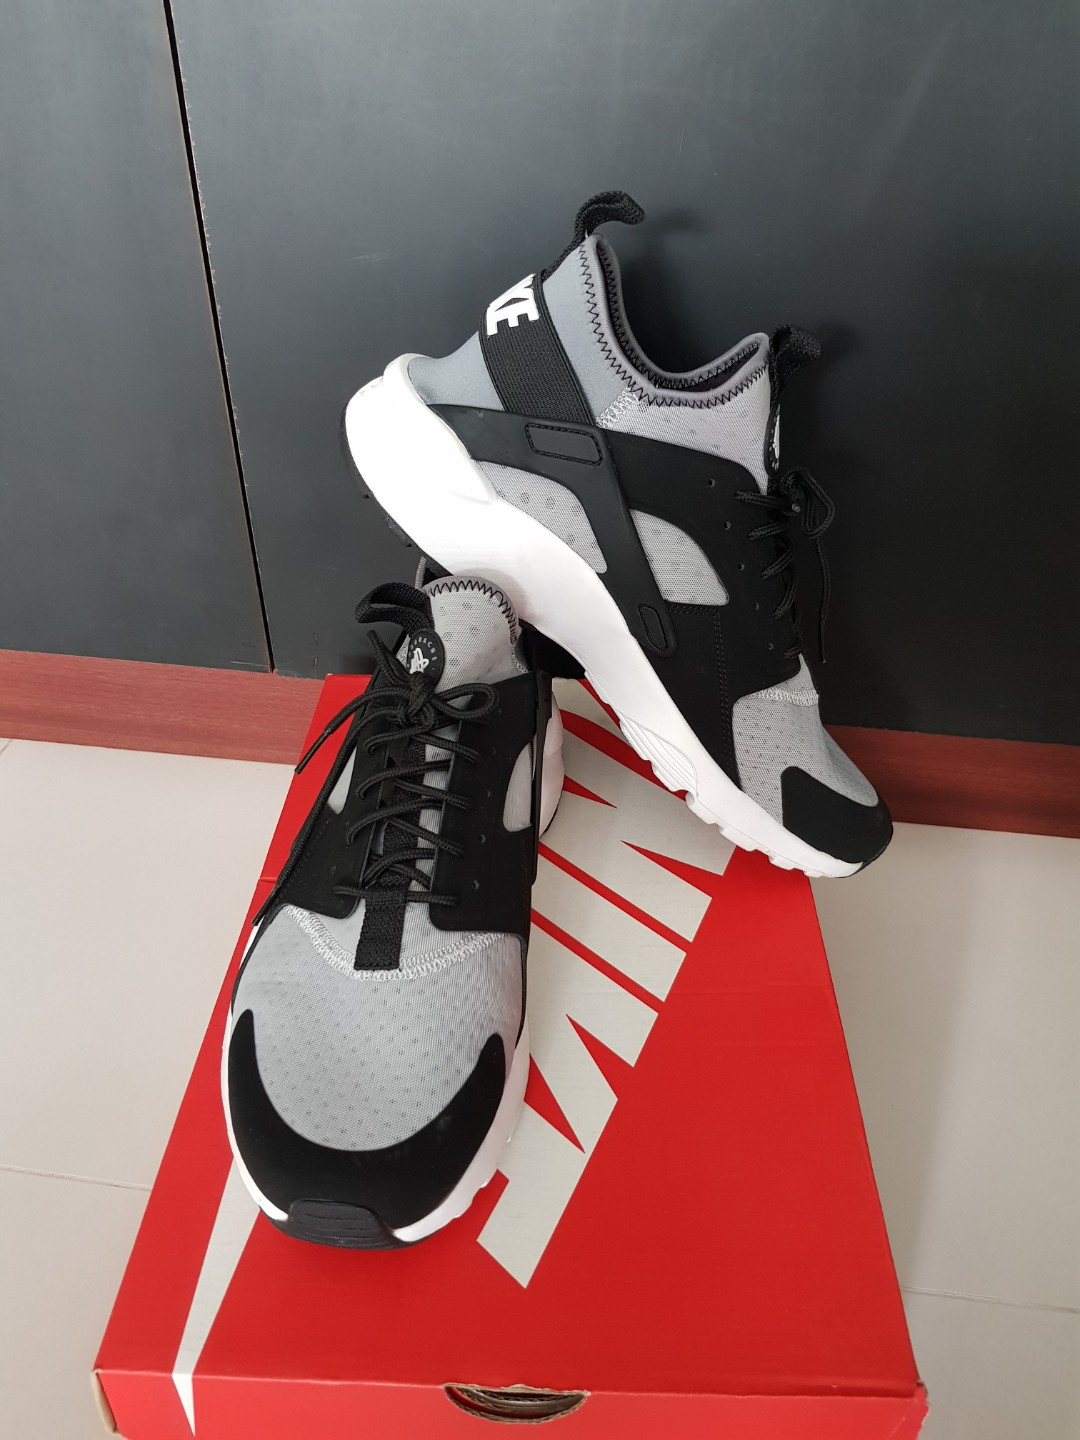 new style a64d0 36873 Home · Men s Fashion · Footwear · Sneakers. photo photo photo photo photo